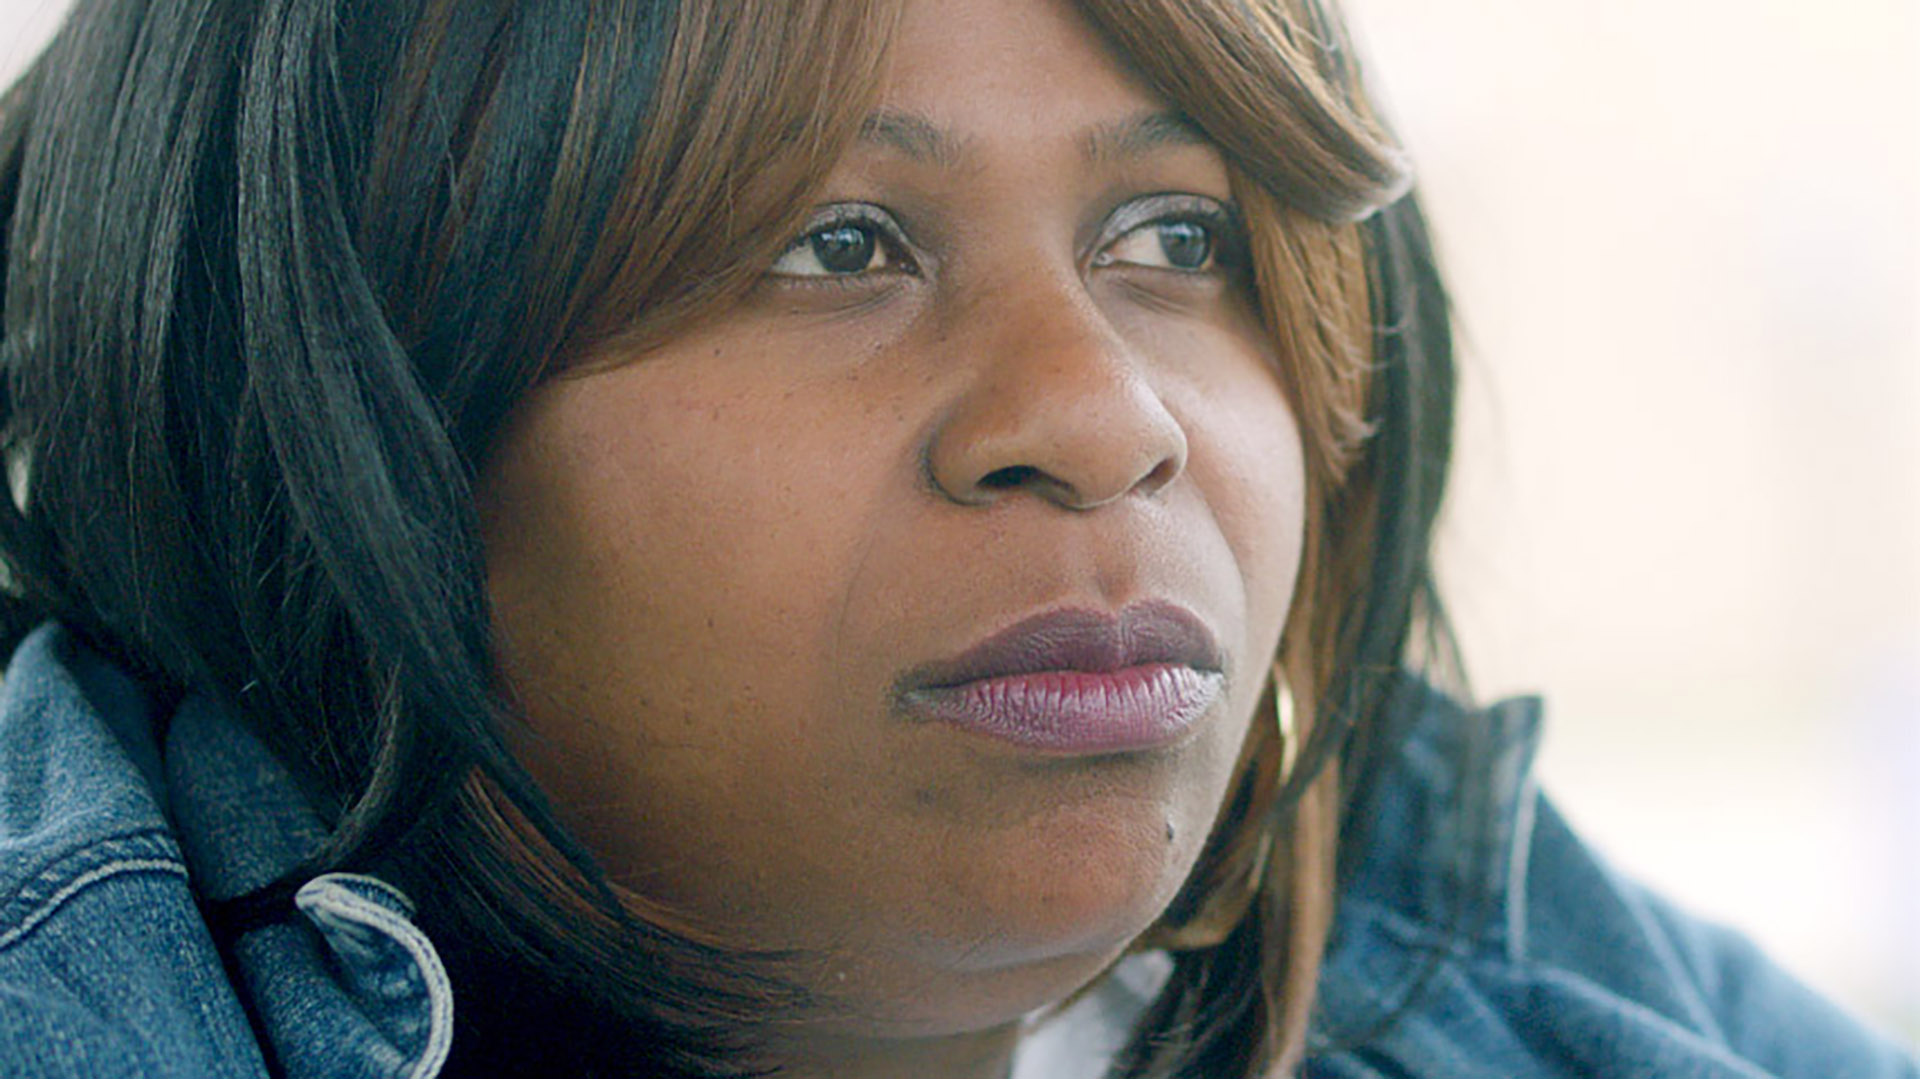 Documentary 'The Talk' explores important discussion between parents and children